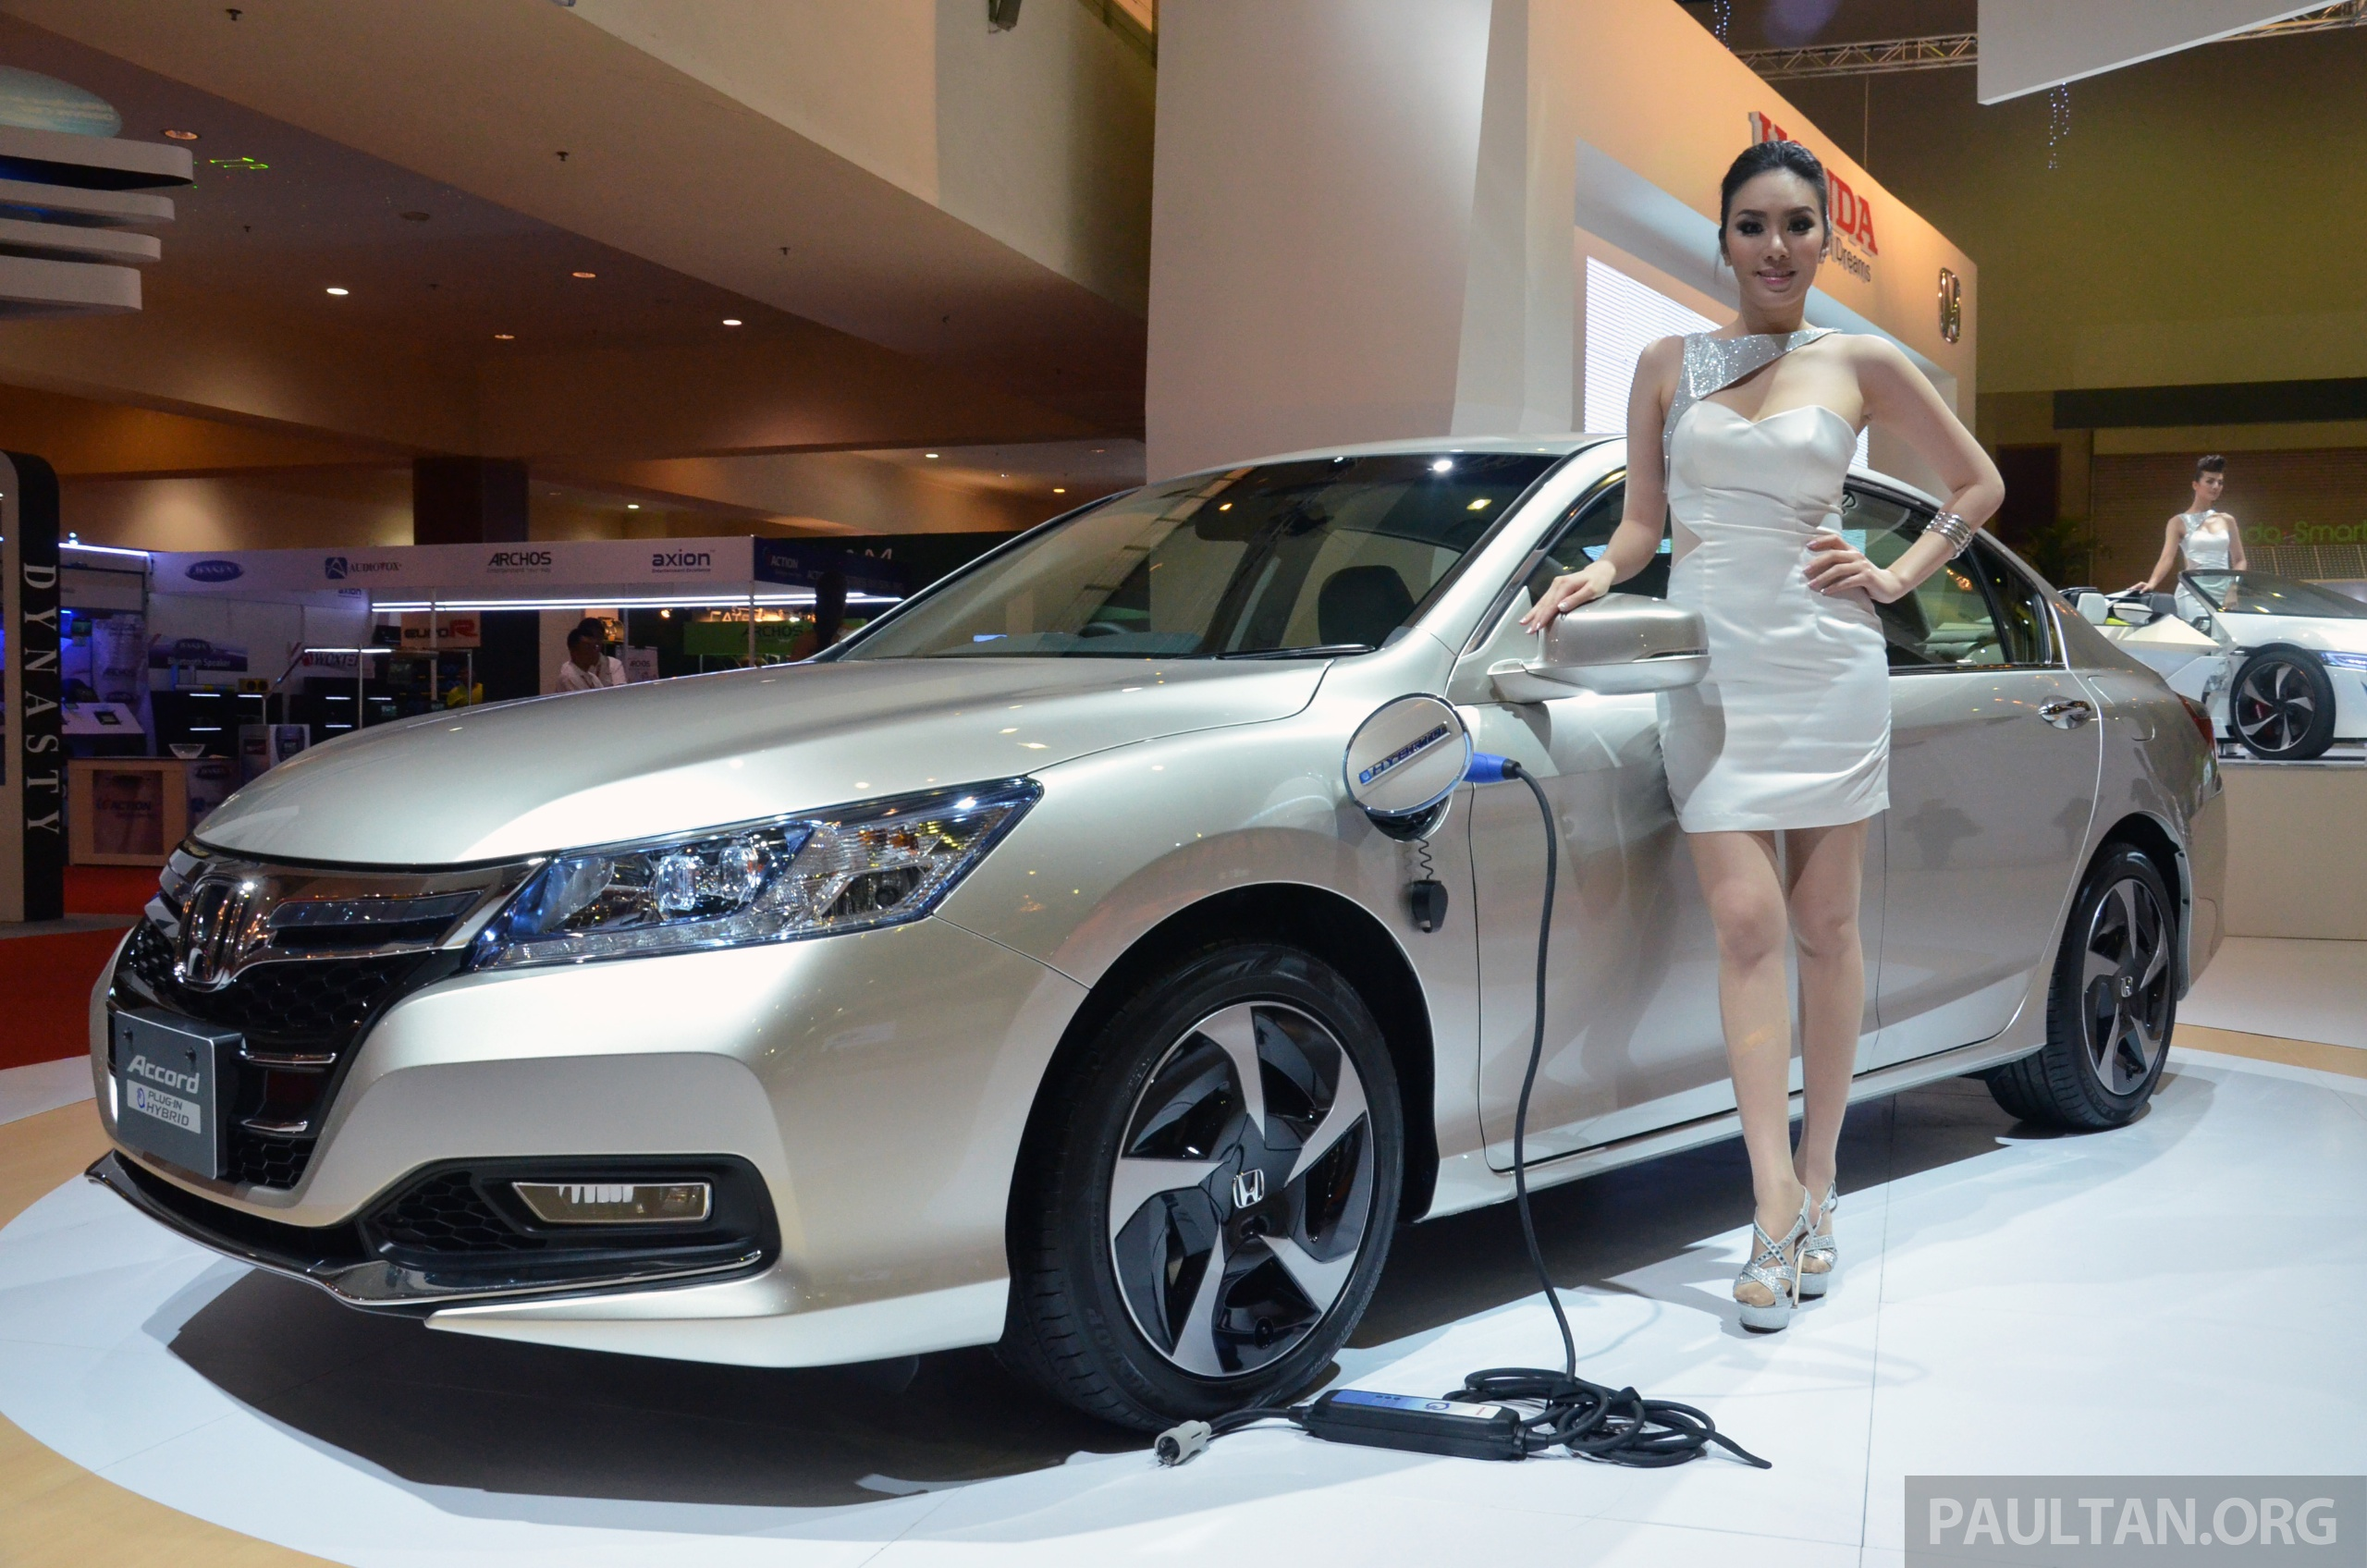 Honda Accord Plug In Hybrid Previewed At Klims13 Malaysia Studying Introduction Paul Tan Image 210537